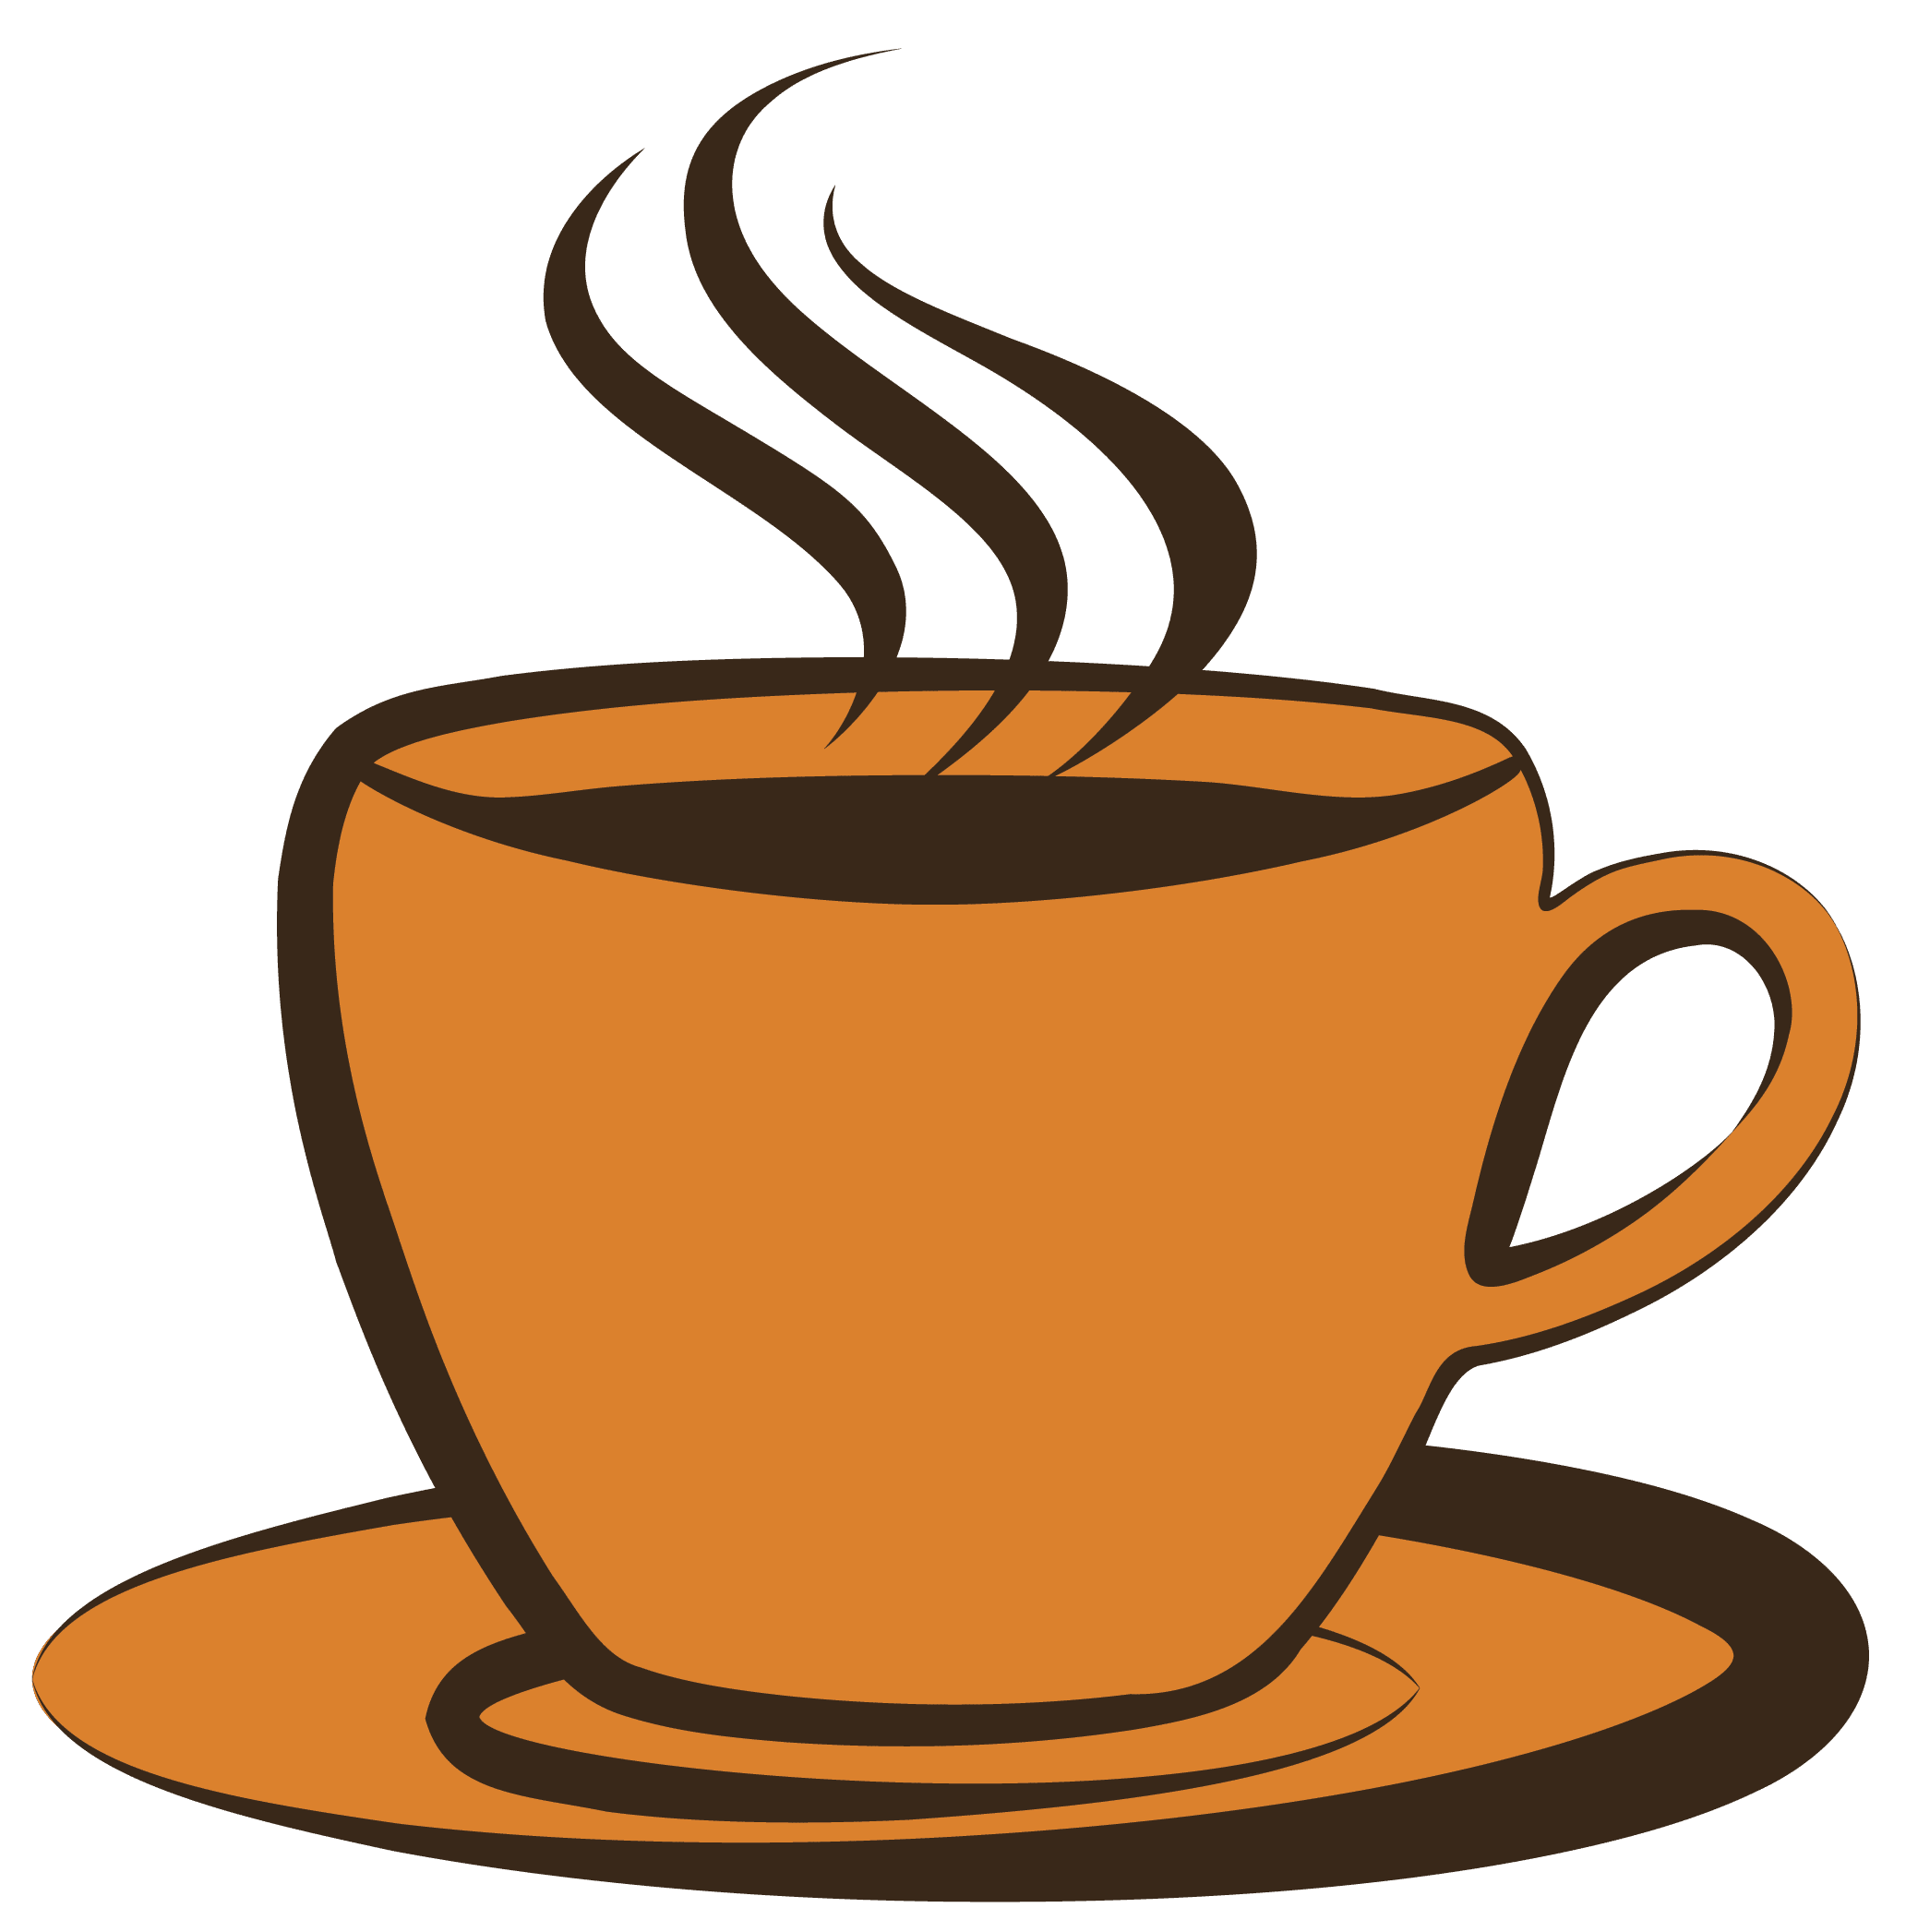 Free Cartoon Coffee Cliparts Download Free Cartoon Coffee Cliparts Png Images Free Cliparts On Clipart Library